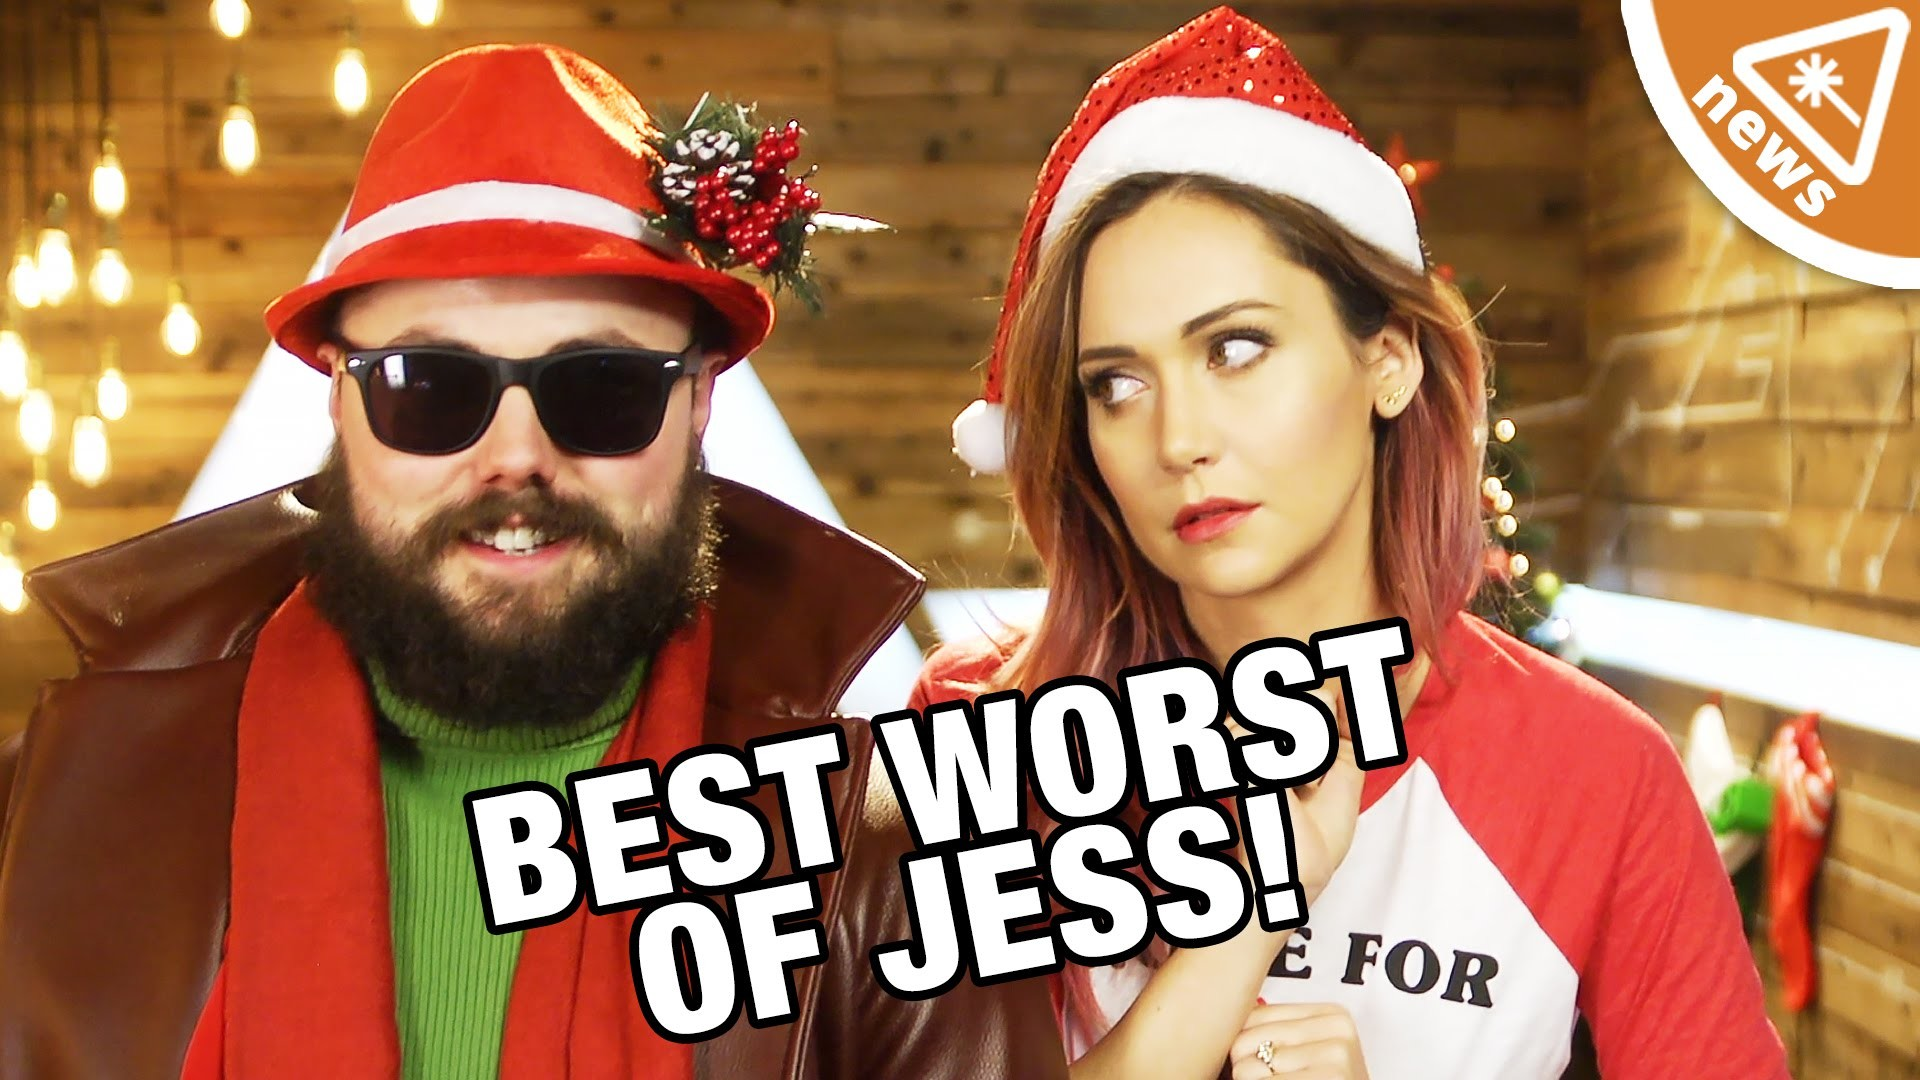 The Best and Worst of Jessica Chobot from 2015! (Nerdist News w/ Jessica  Chobot) – YouTube